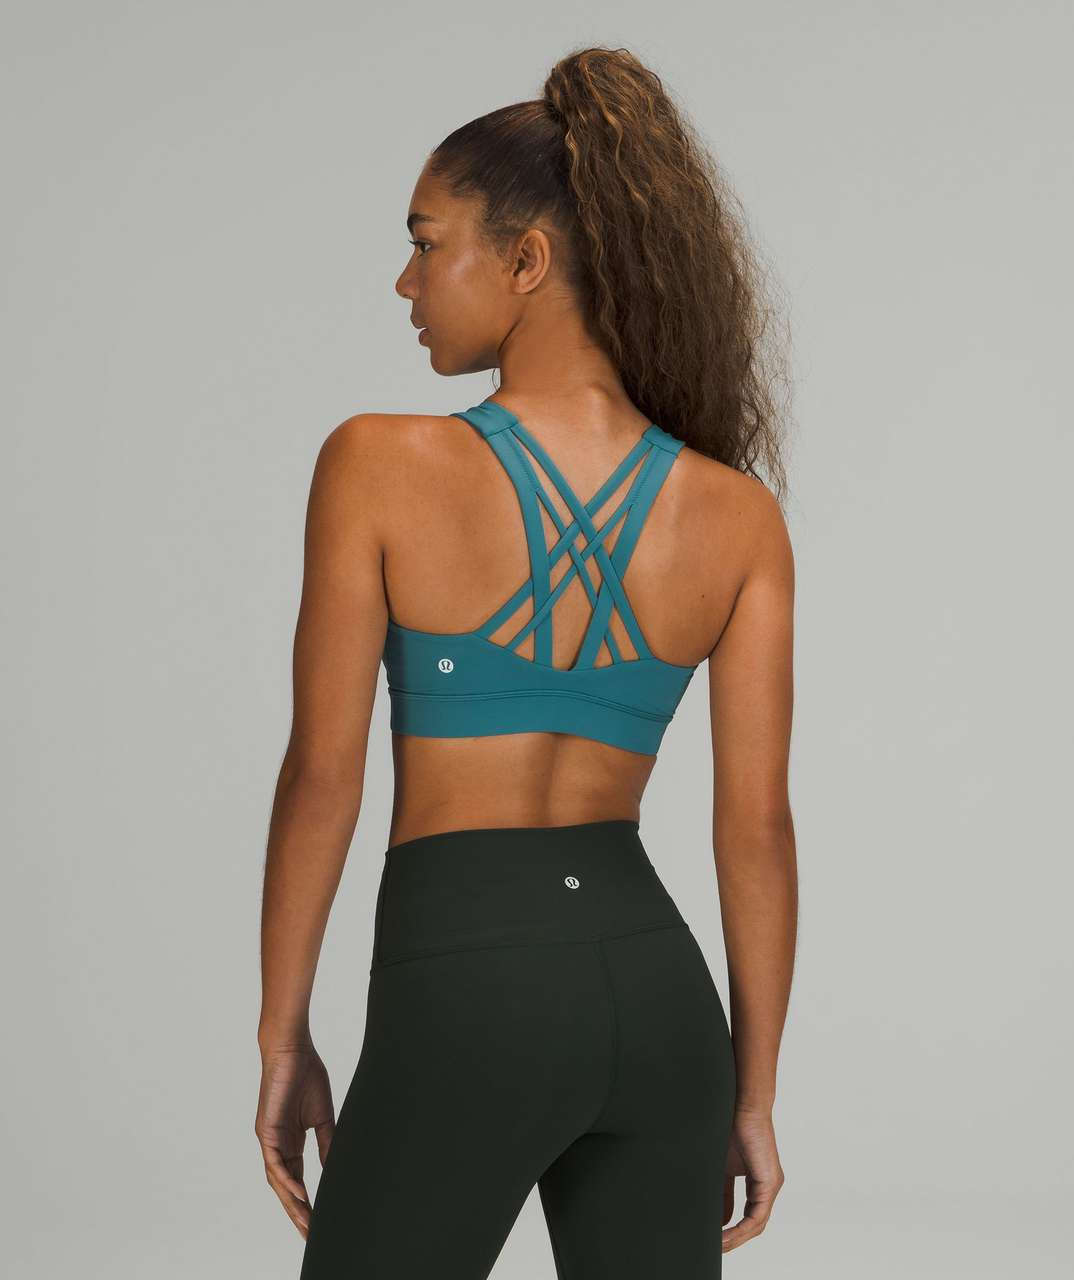 Lululemon Free To Be Elevated Bra *Light Support, DD/E Cup - Capture Blue